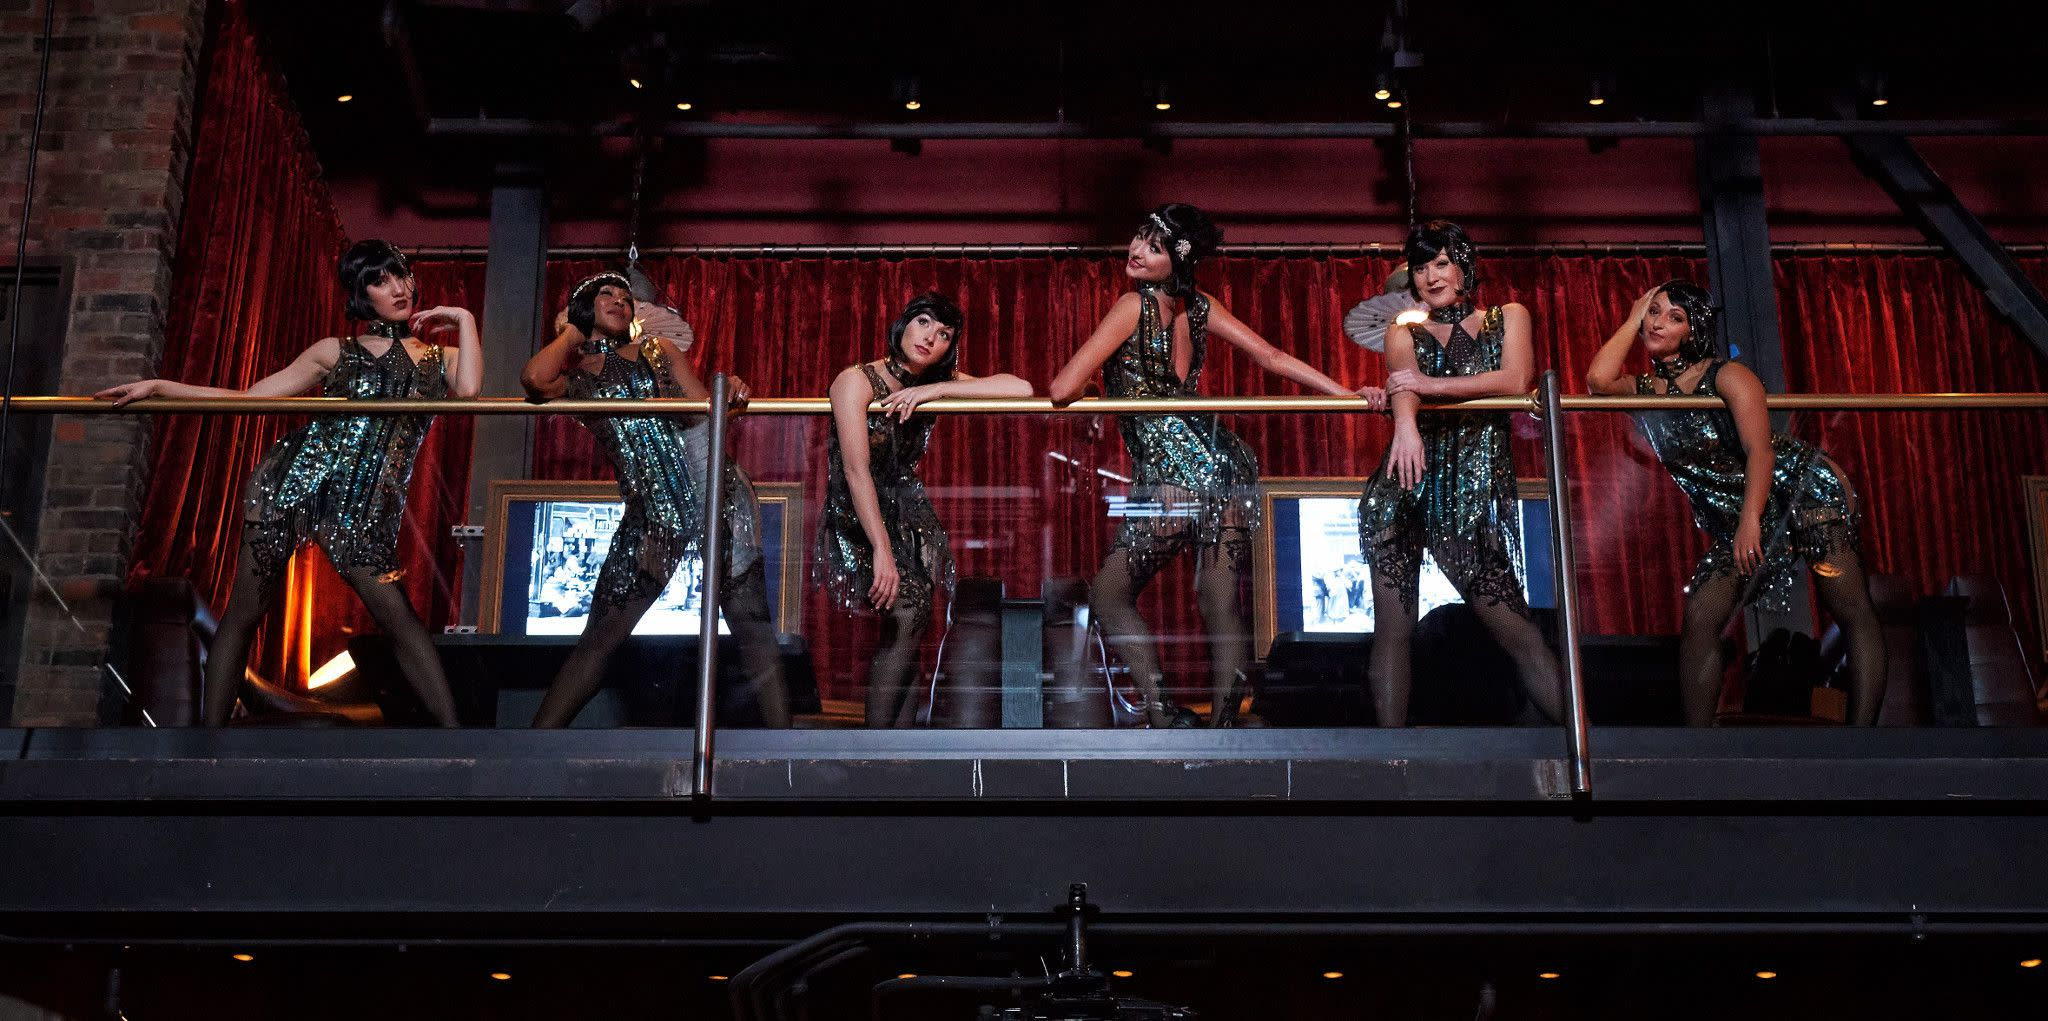 The Edison at Disney Springs in Orlando Hosts Burlesque Shows and Other Live Performances